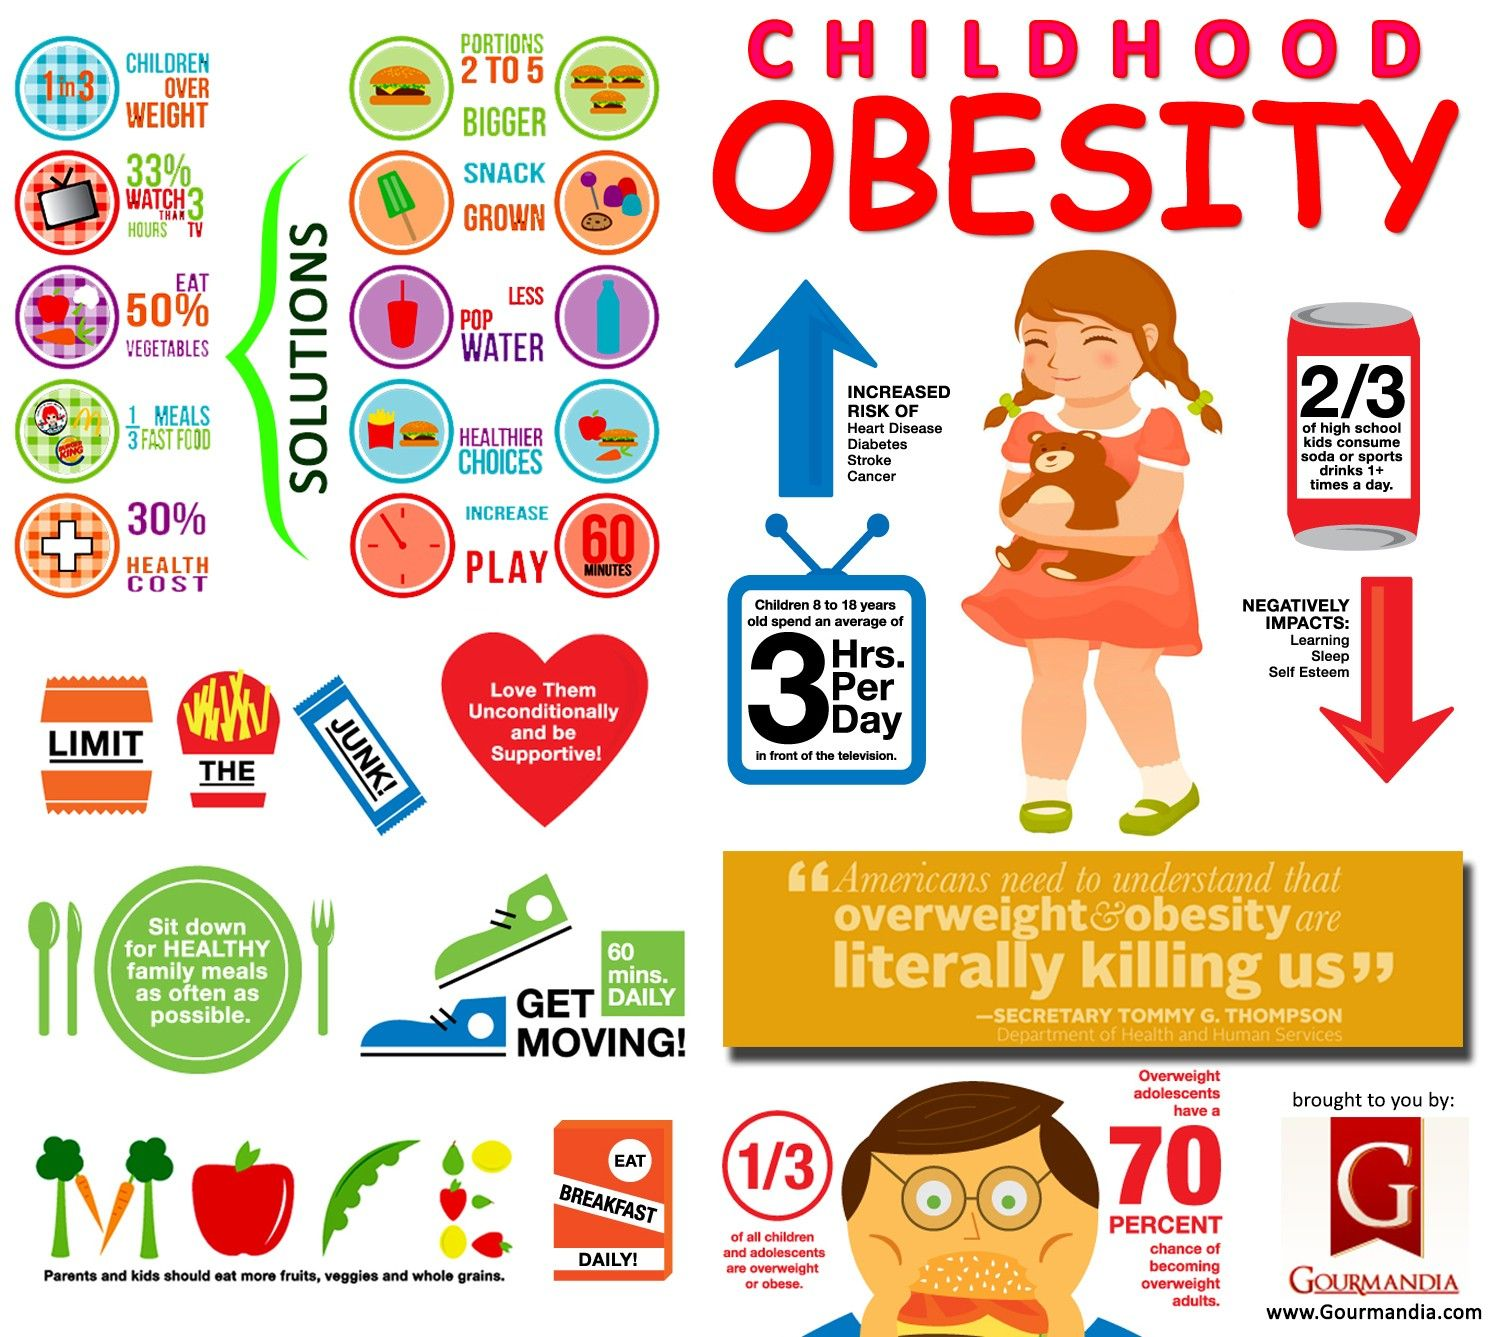 Essay on childhood obesity??? long essay, please be willing to read, need help?